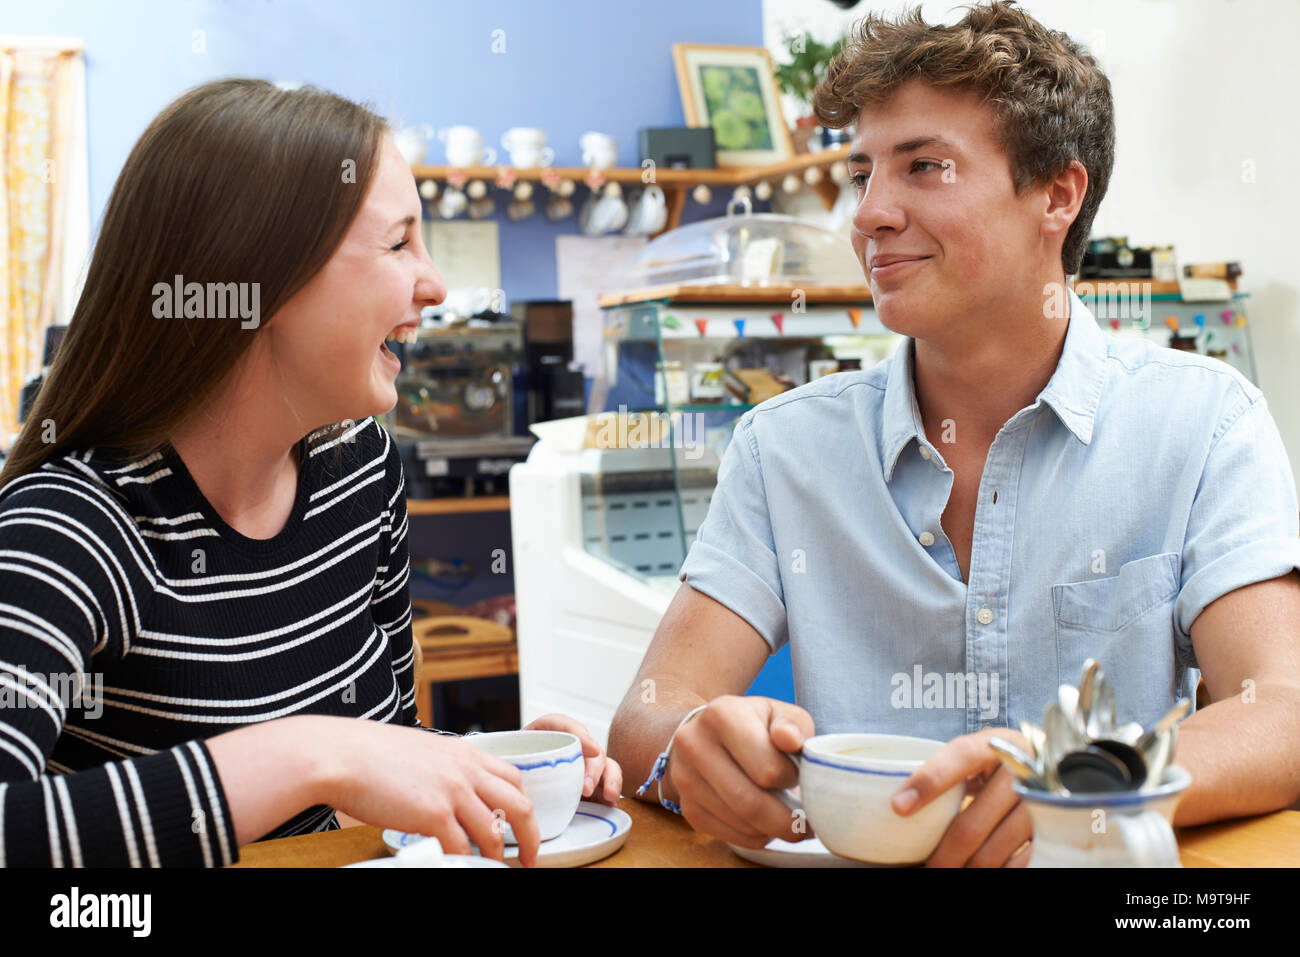 Teenage Couple Meeting In Cafe And Drinking Cup Of Coffee - Stock Image